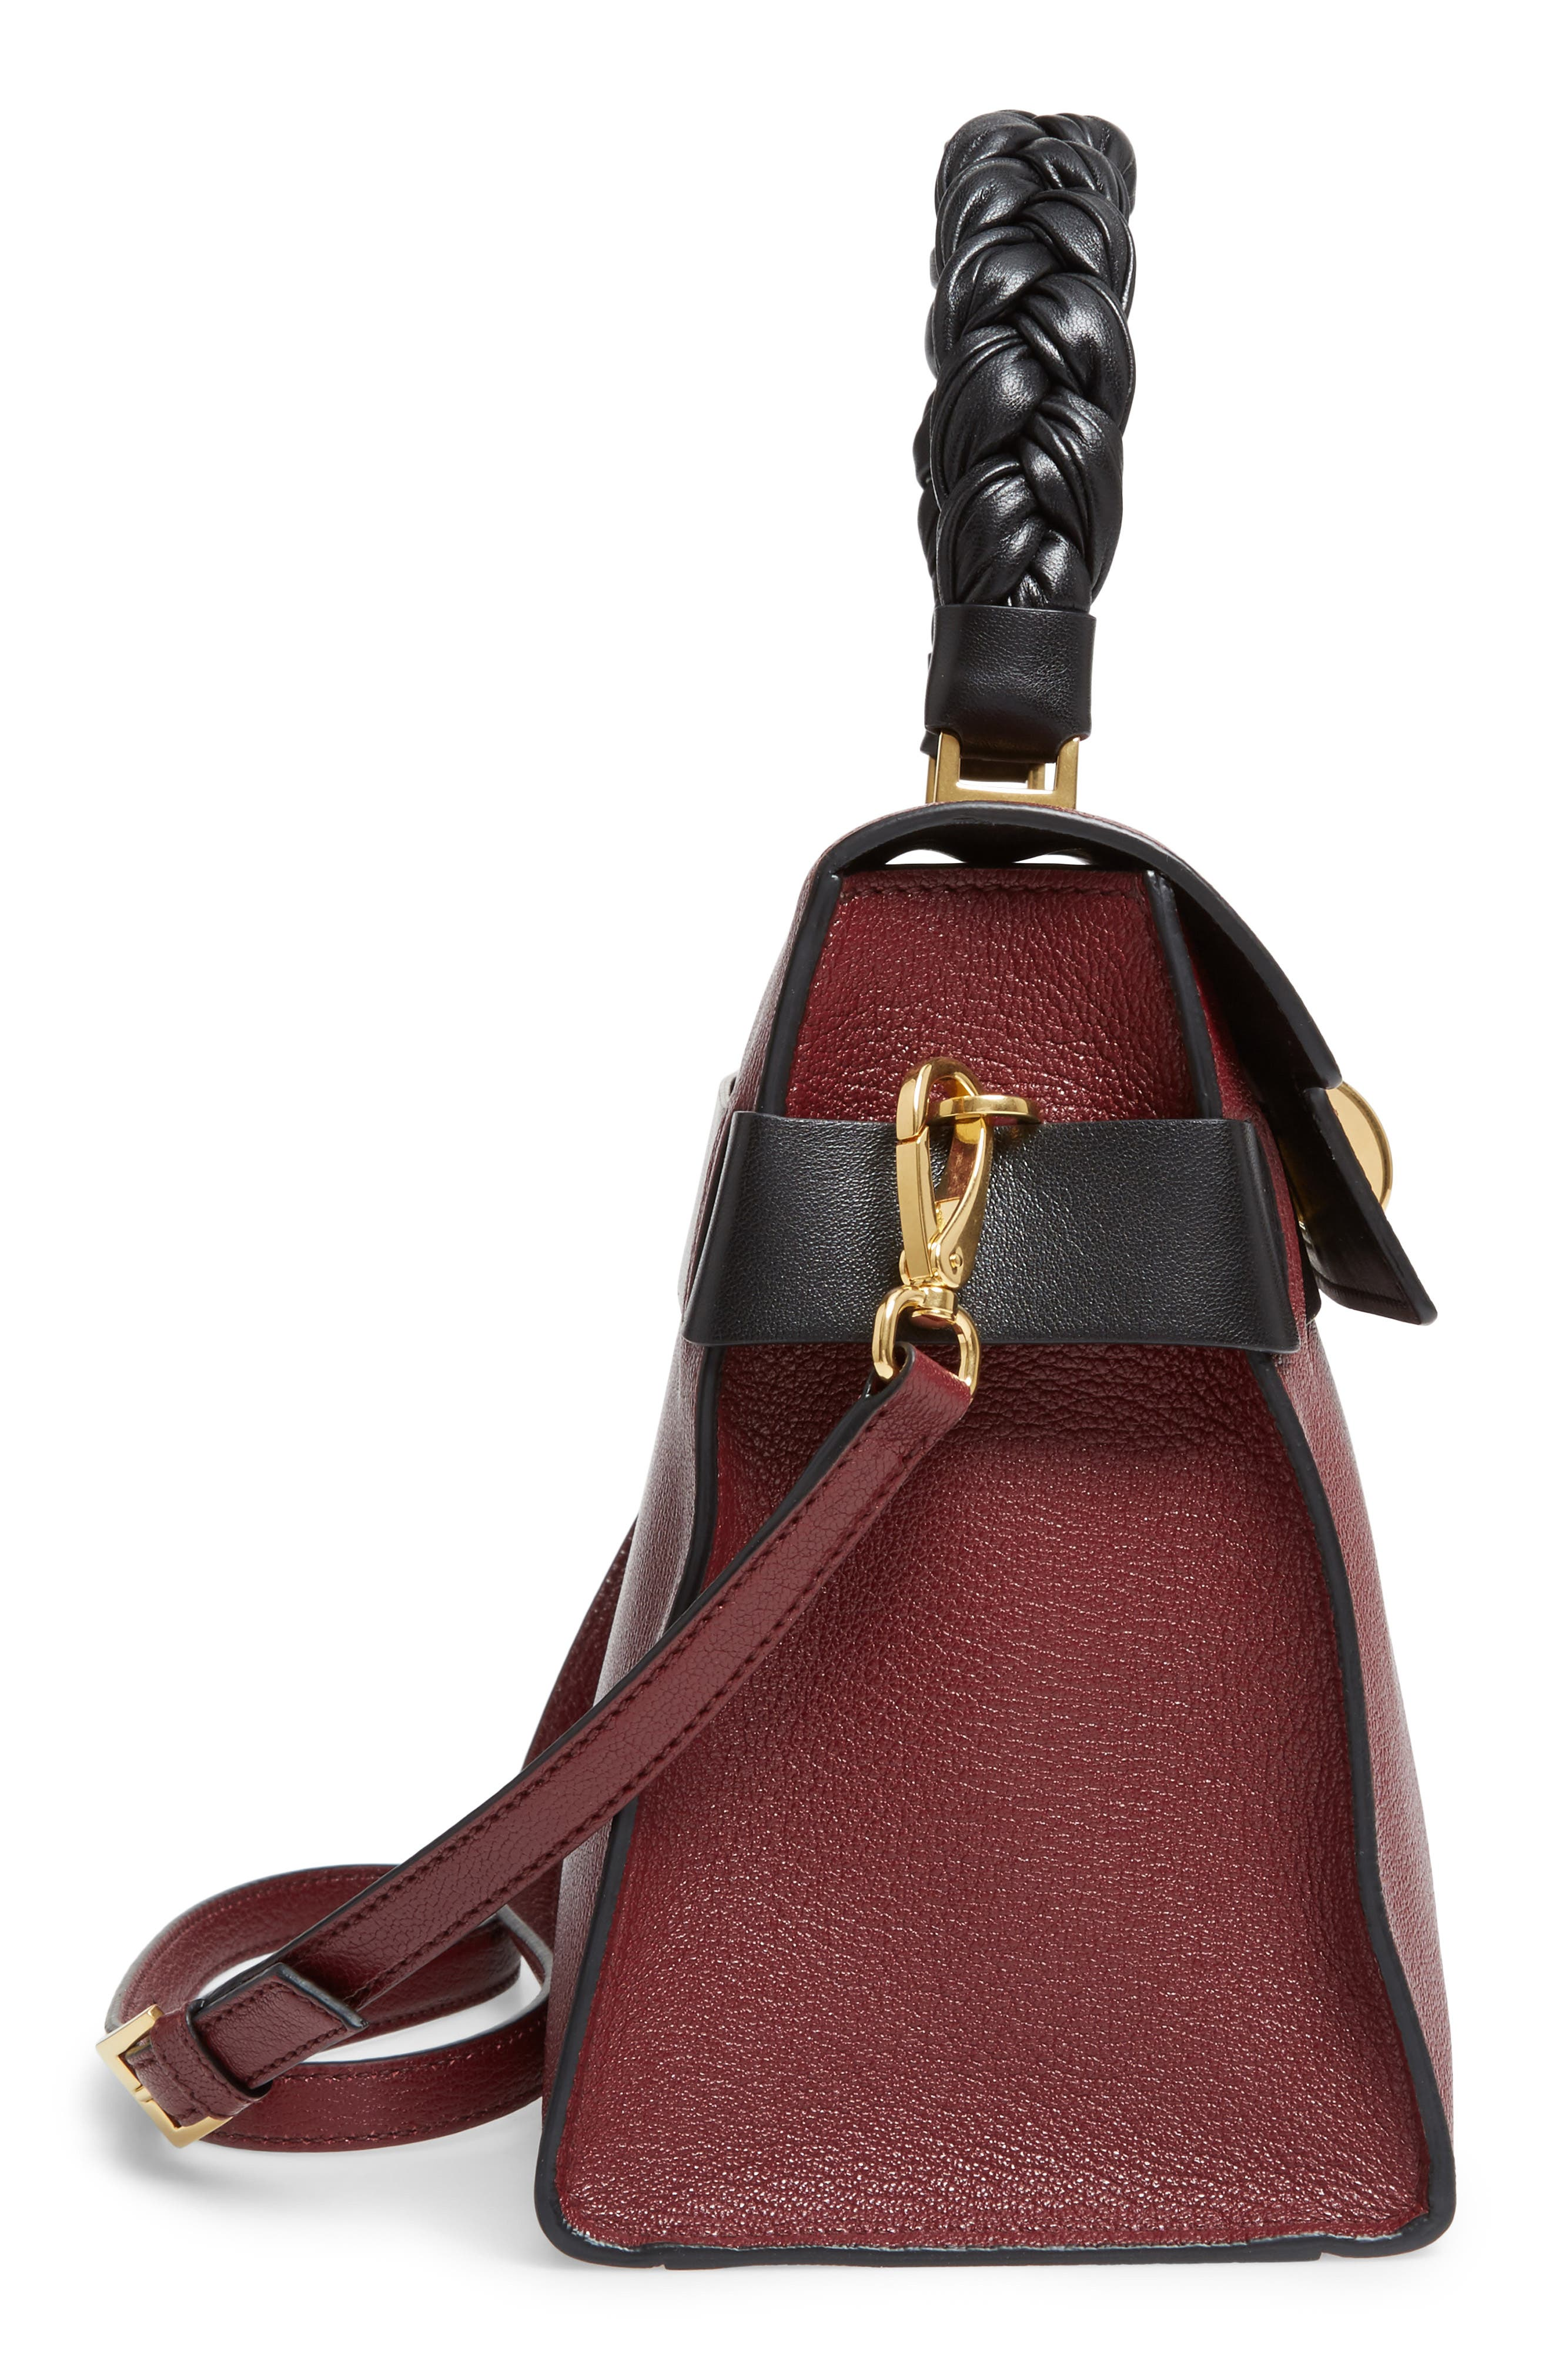 Madras Click Goatskin Leather Satchel,                             Alternate thumbnail 5, color,                             930